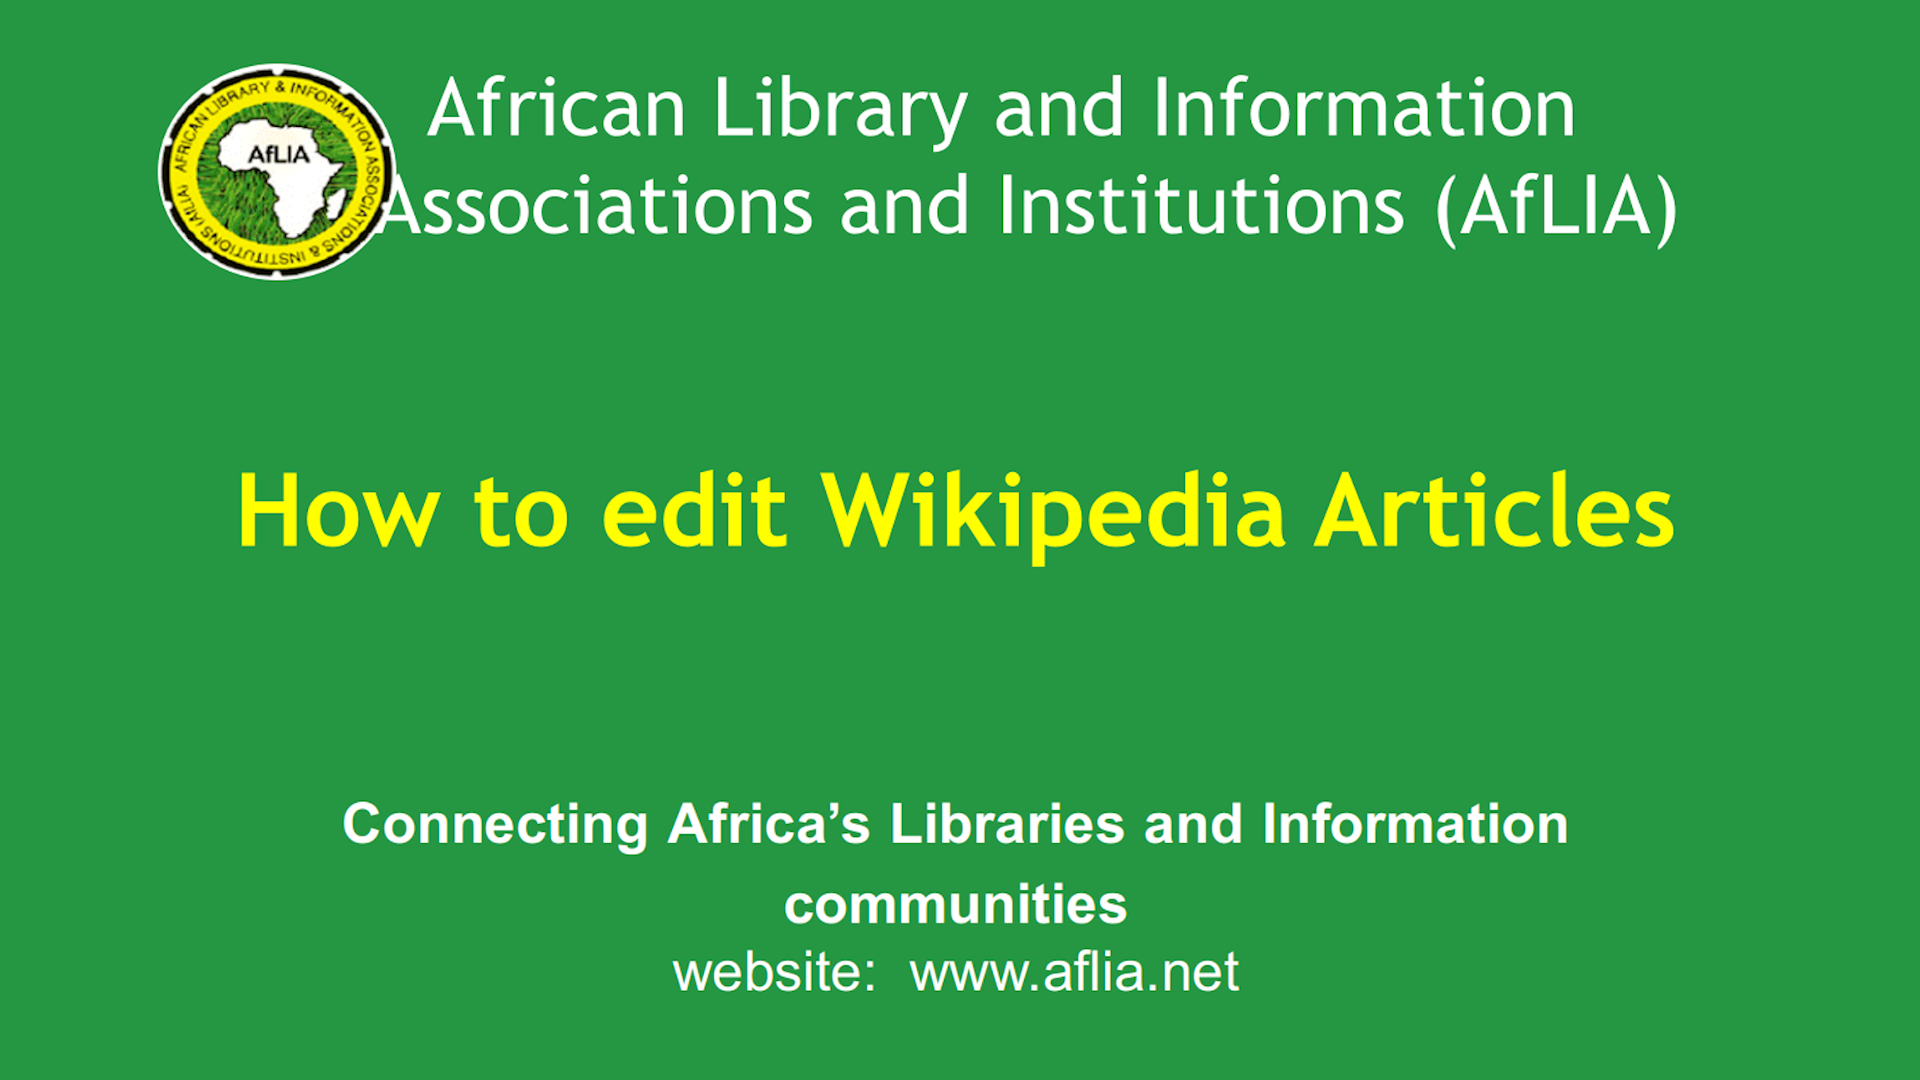 How to edit Wikipedia articles